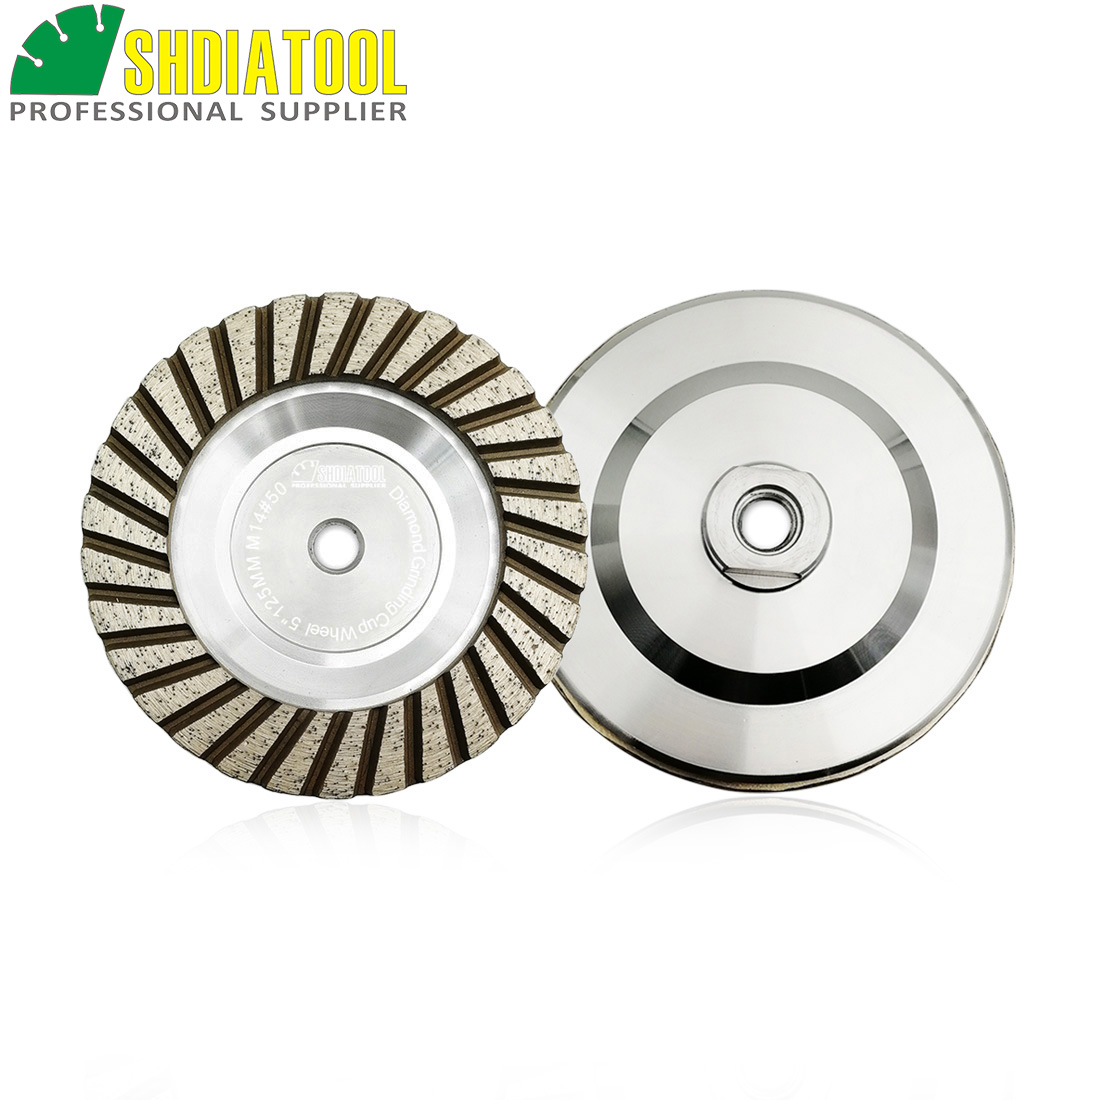 SHDIATOOL 2pcs Dia 125mm/5inch M14 Thread Aluminum Based Diamond Grinding Cup Wheel Grit#50 Grinding Wheel For Granite Concrete